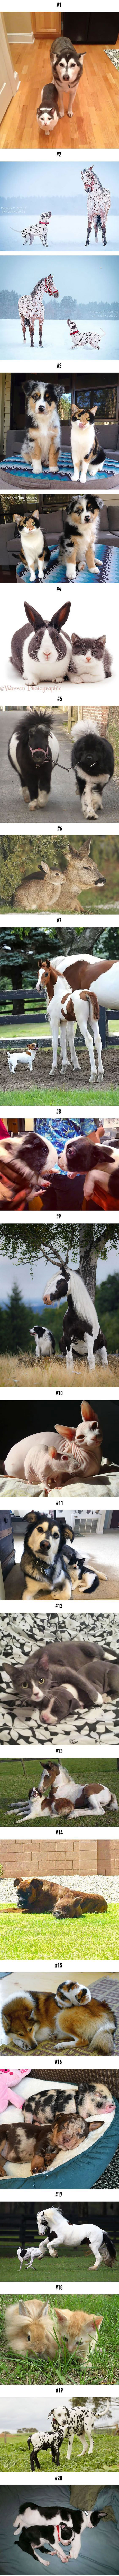 20-animal-brothers-from-other-mothers